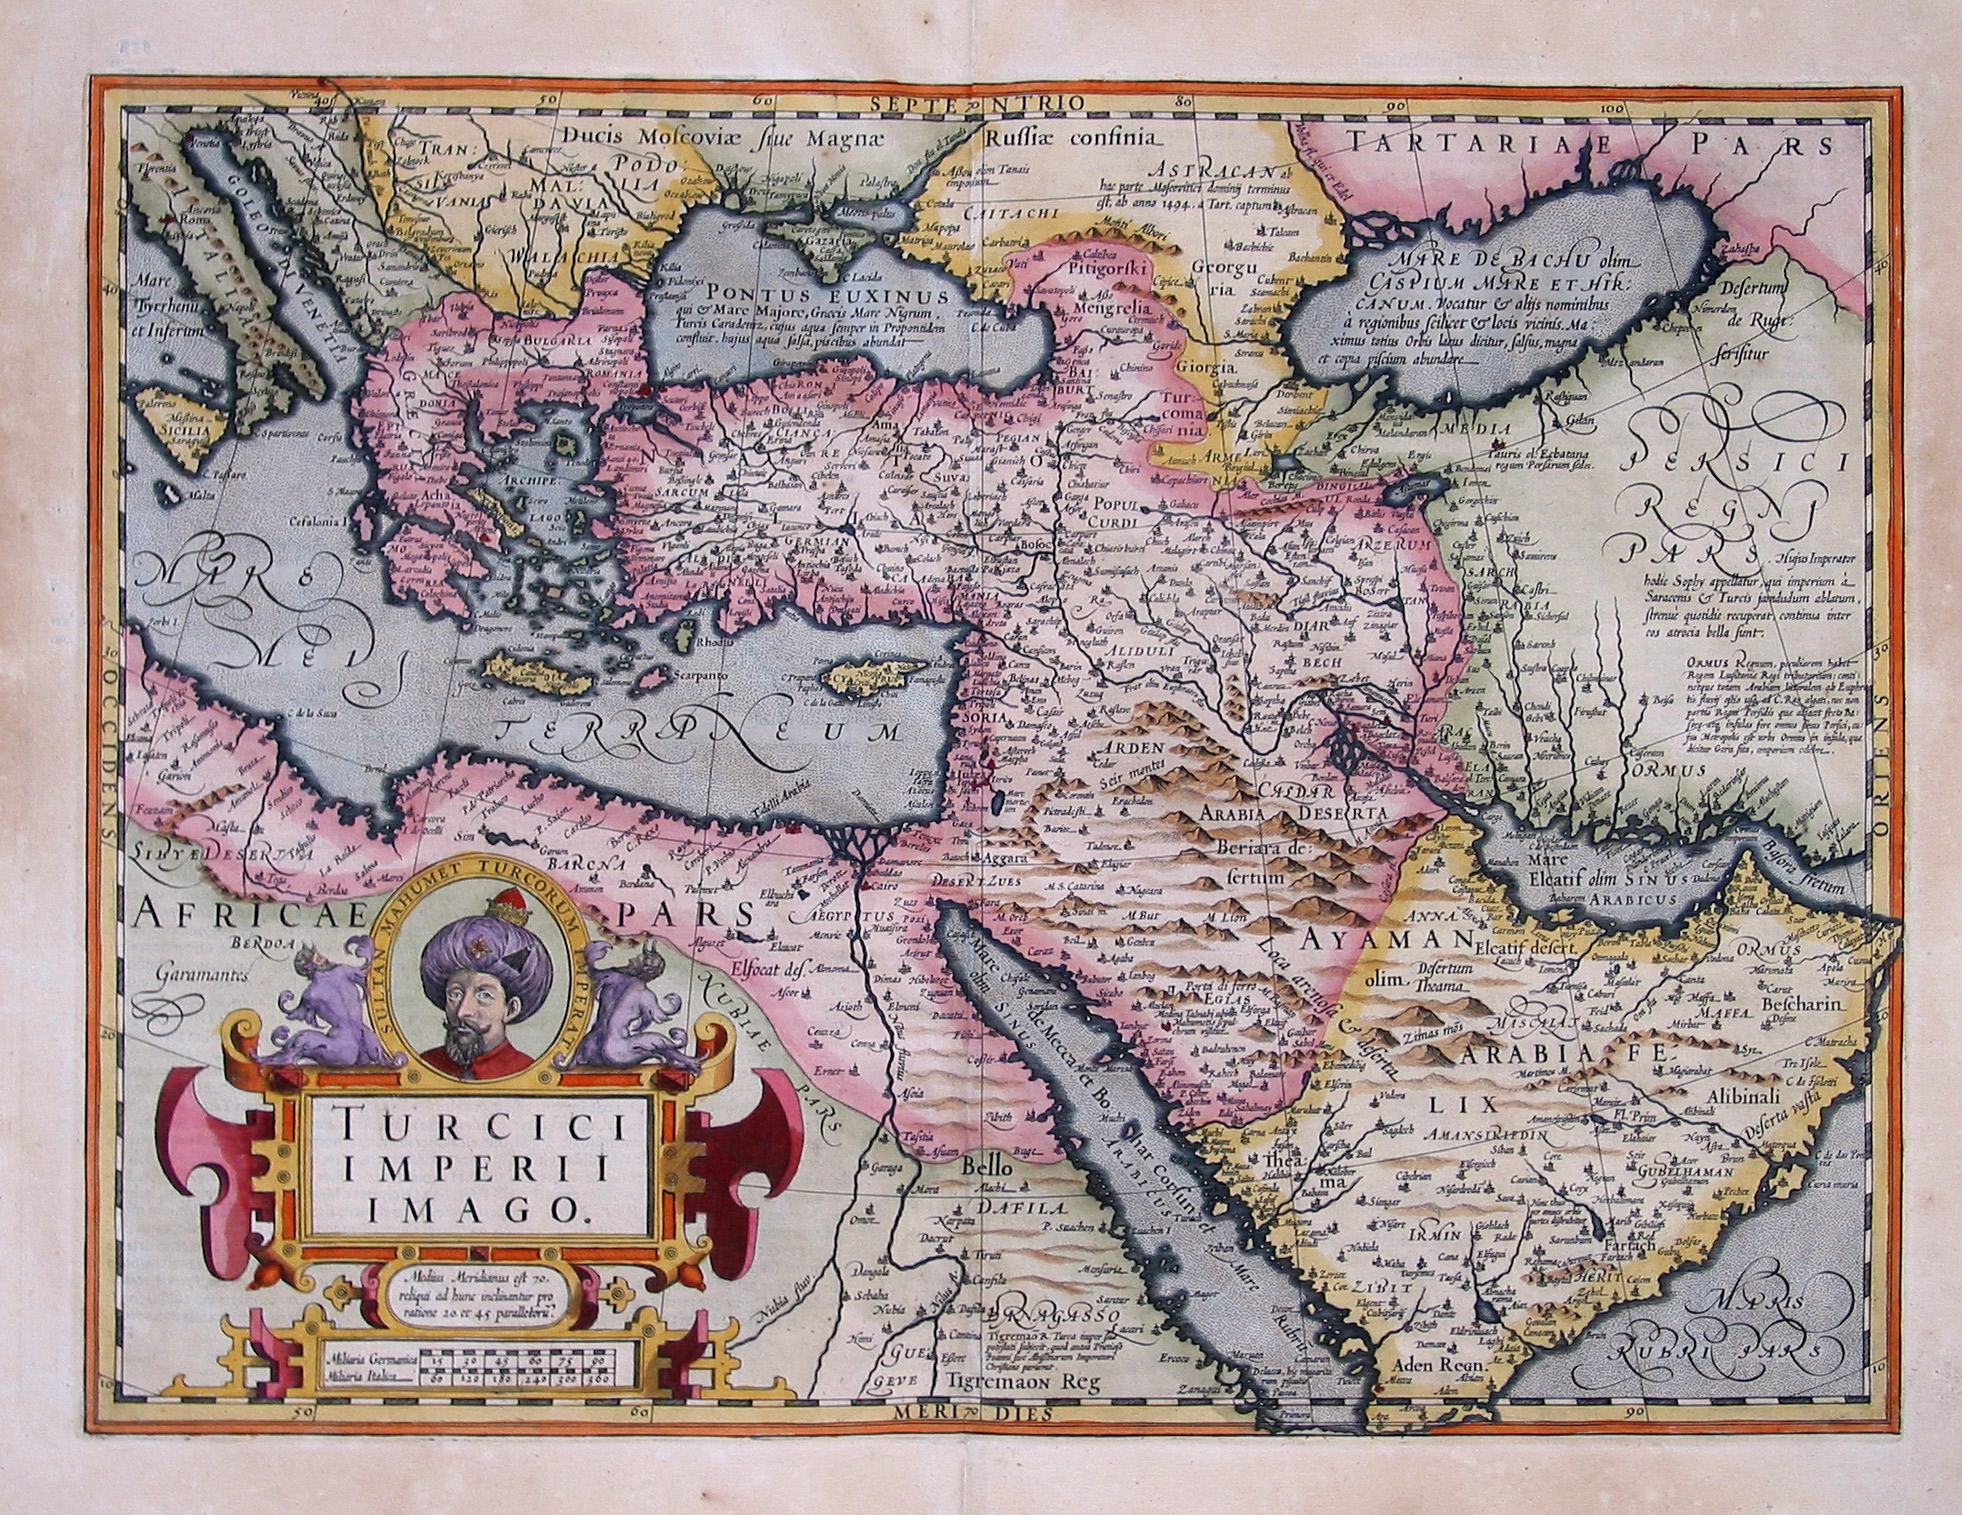 between venice and cyprus War between turks and venice in act 1 of othello, the threat of a turkish fleet invading the island of cyprus draws othello and desdemona away from venice shakespeare's depiction of this conflict is based in history, but by no means historically accurate.